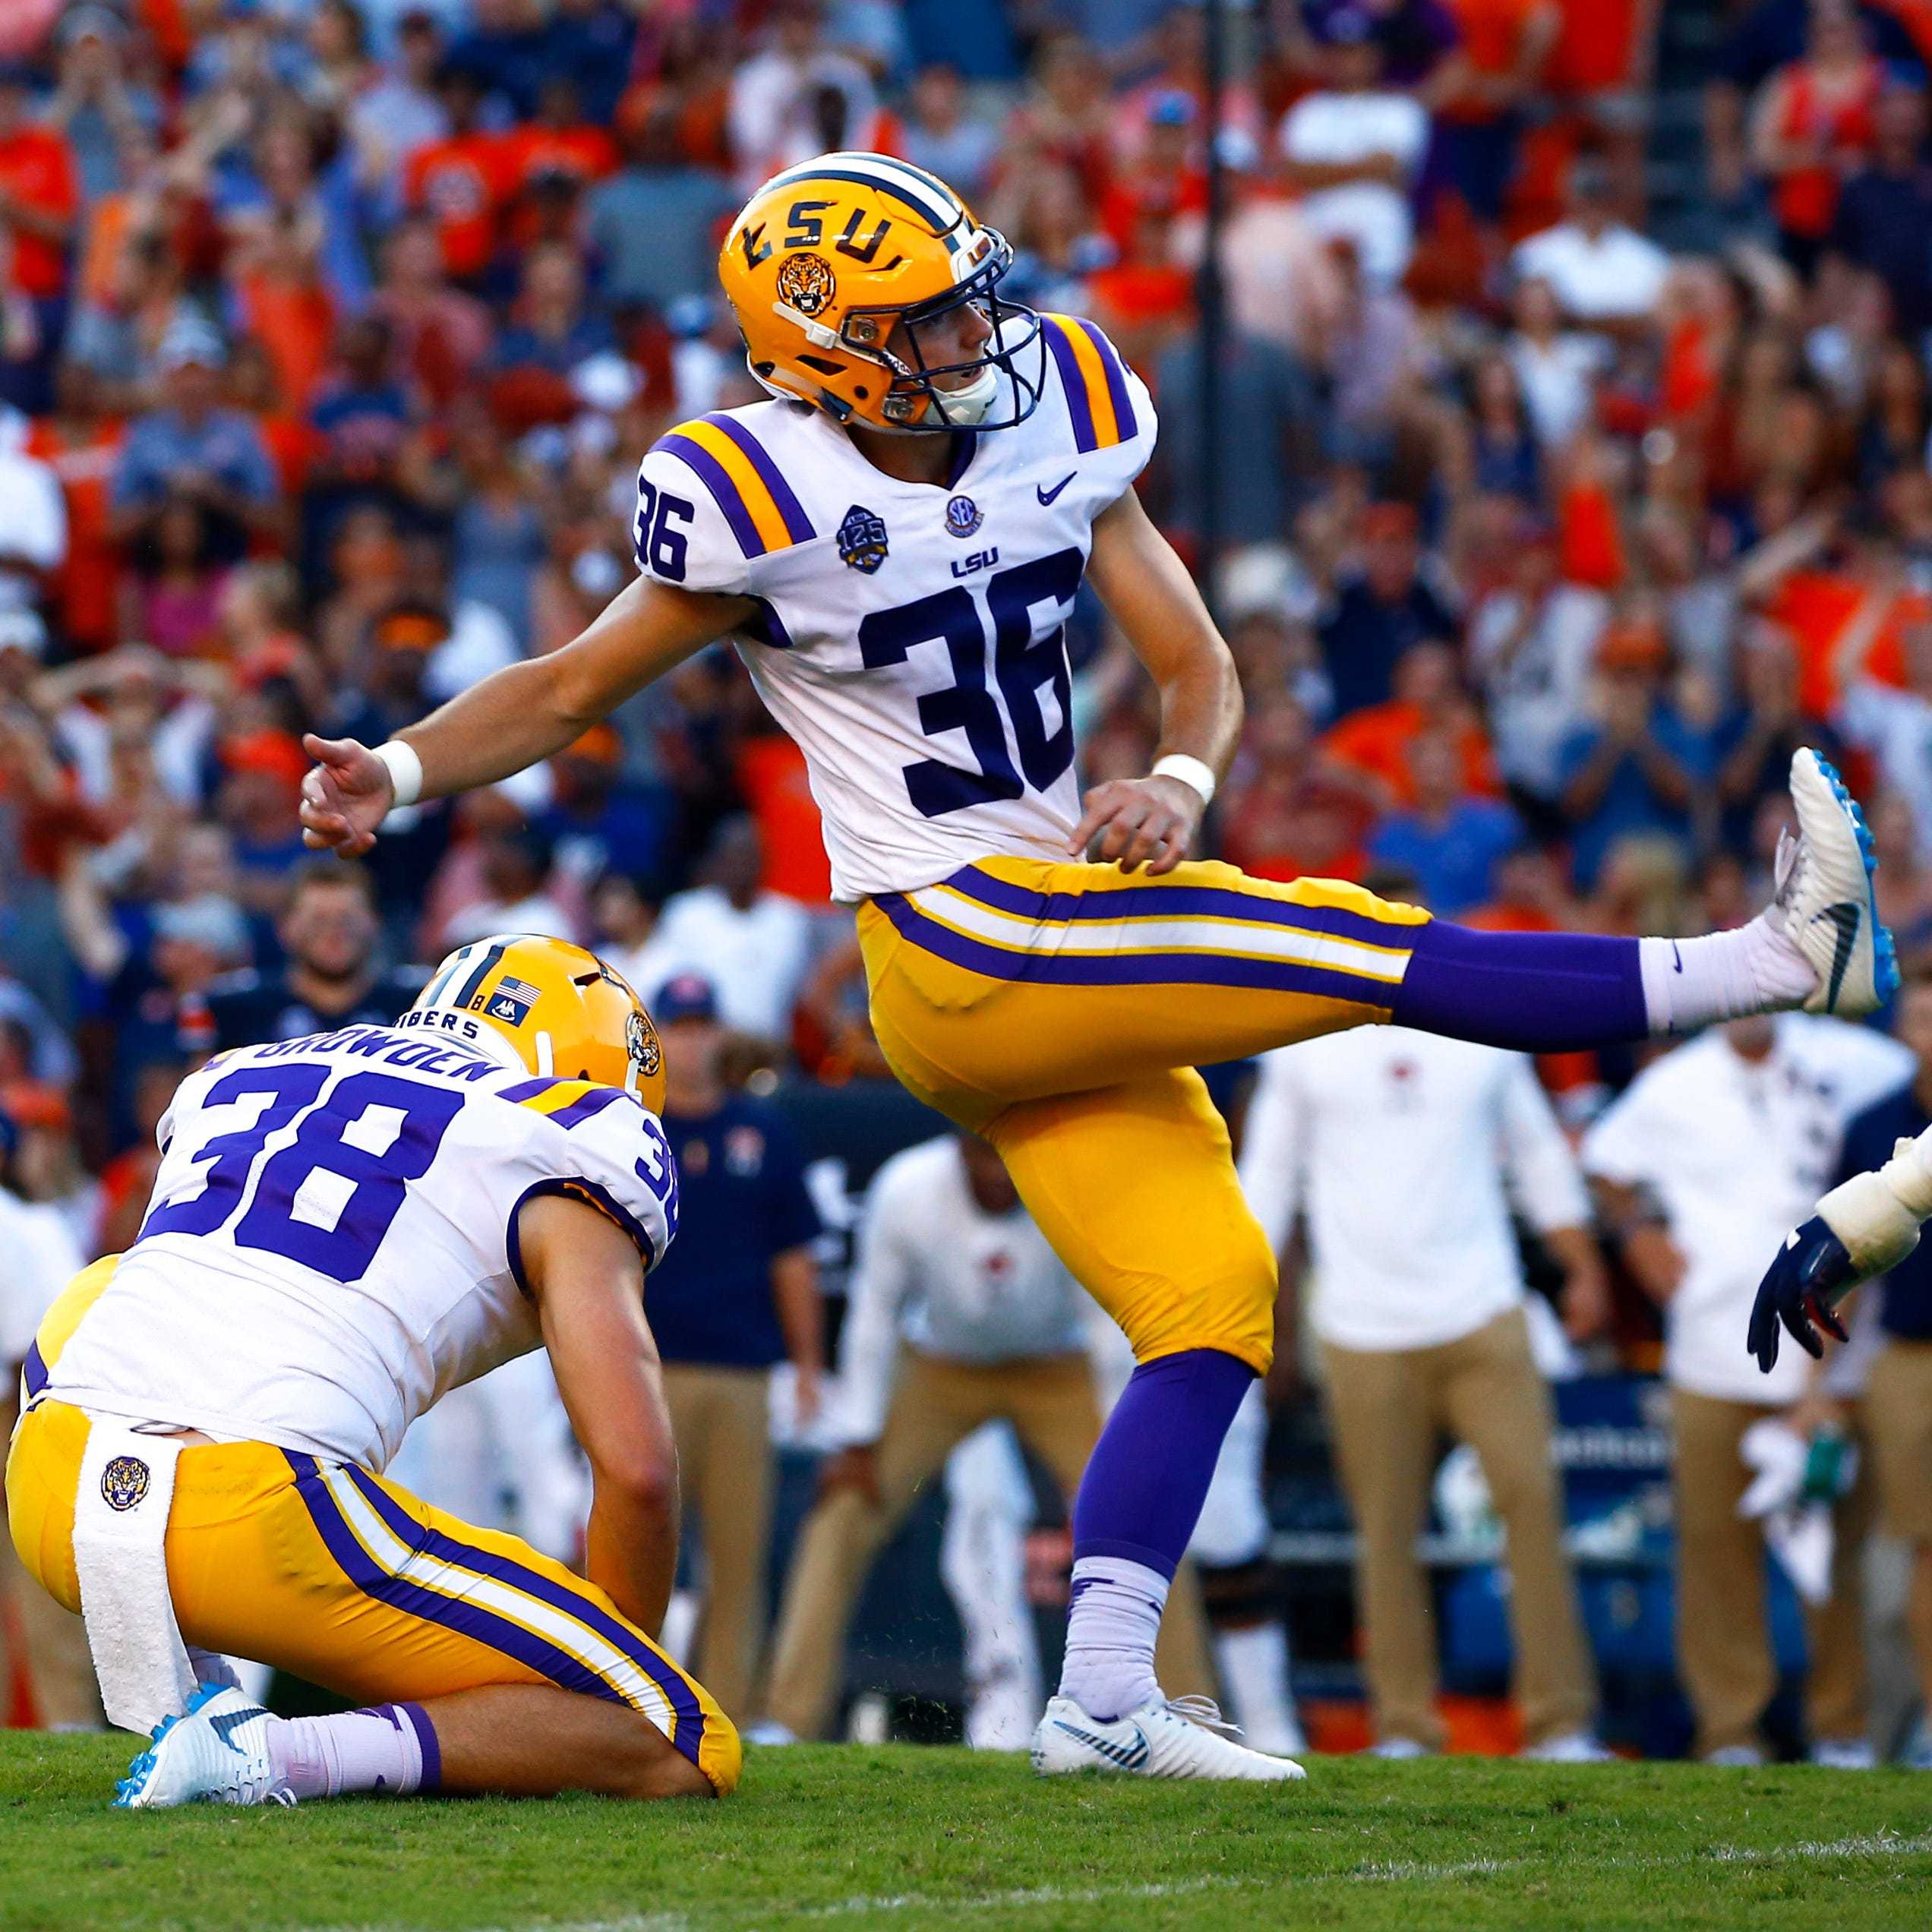 Saturday's top 25: LSU edges Auburn on last-second field goal